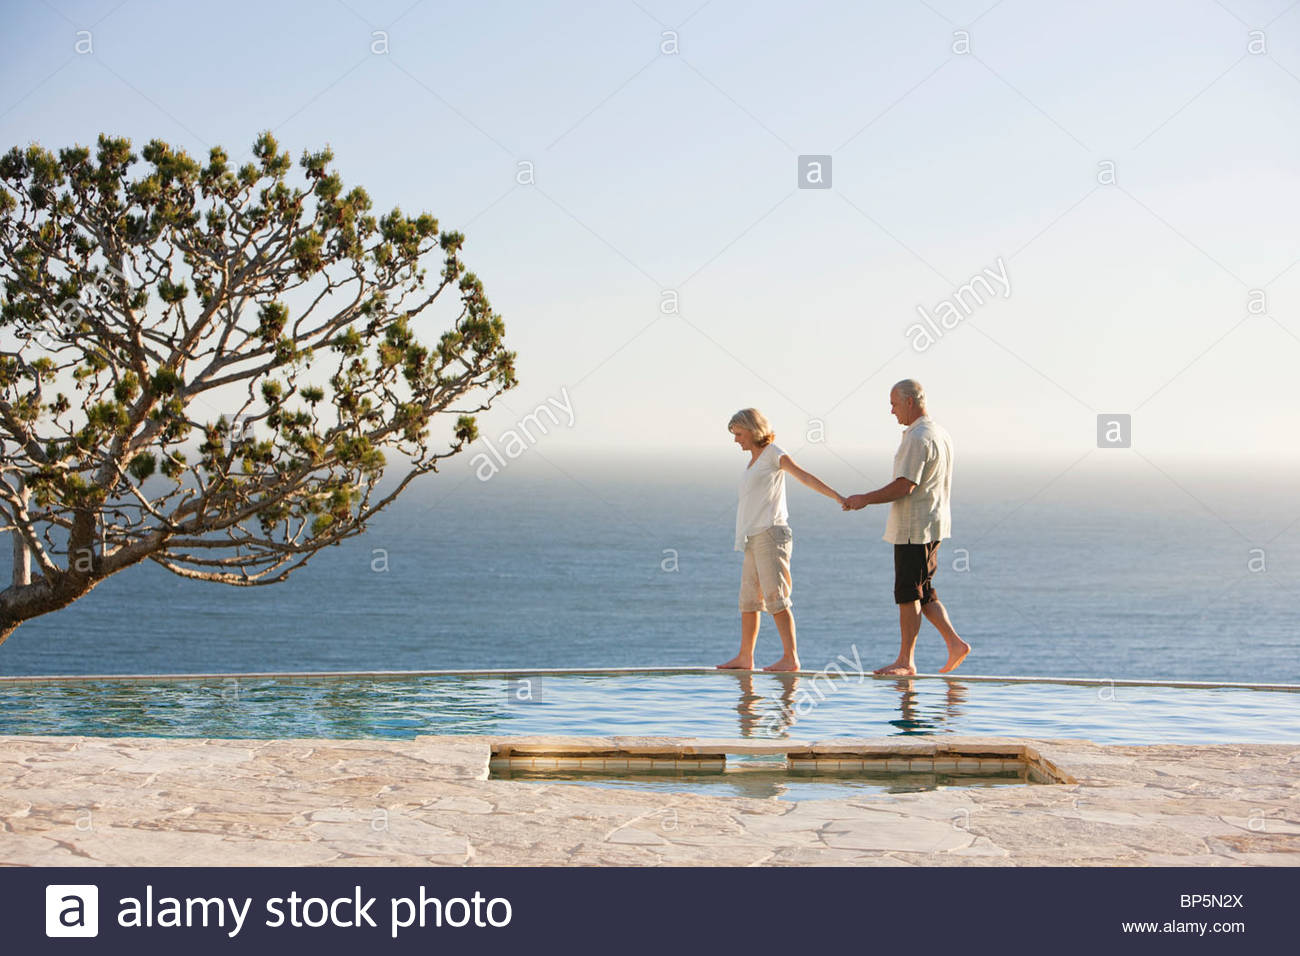 Senior couple holding hands along edge of swimming pool overlooking ocean Stock Photo